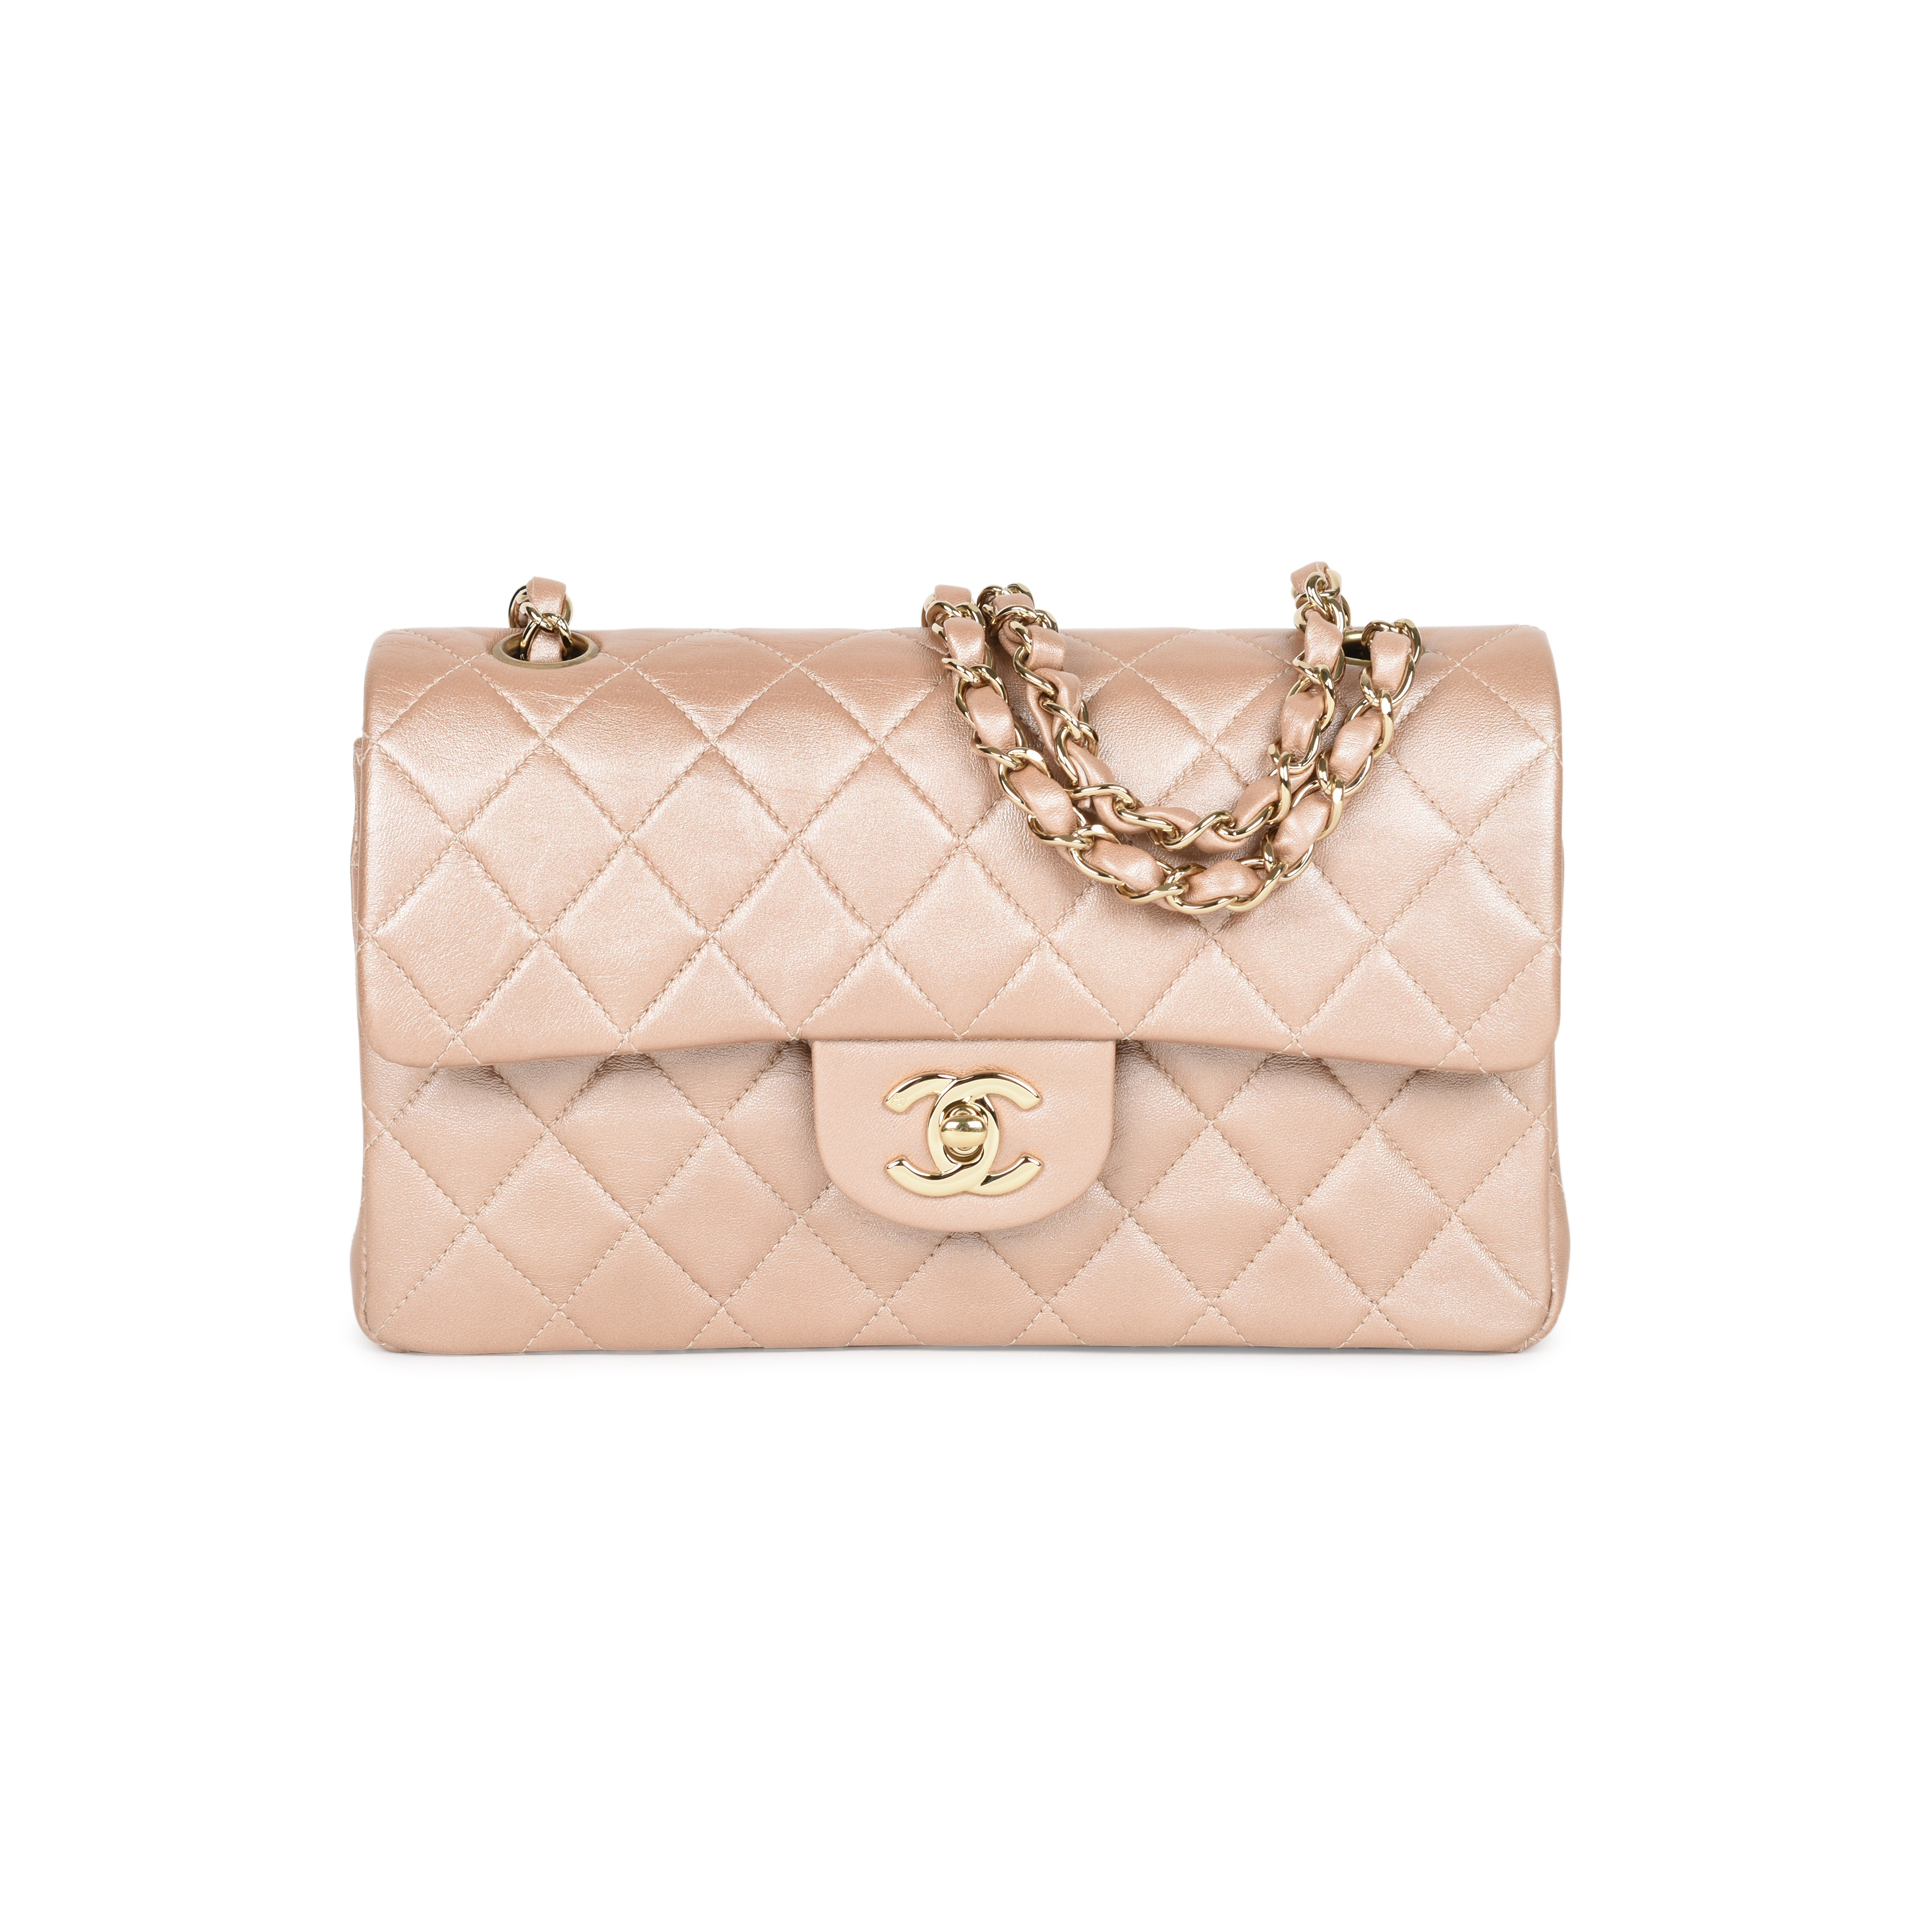 0c2cbf7f0e36 Authentic Second Hand Chanel Rose Gold Small Classic Flap (PSS-051-00373) |  THE FIFTH COLLECTION